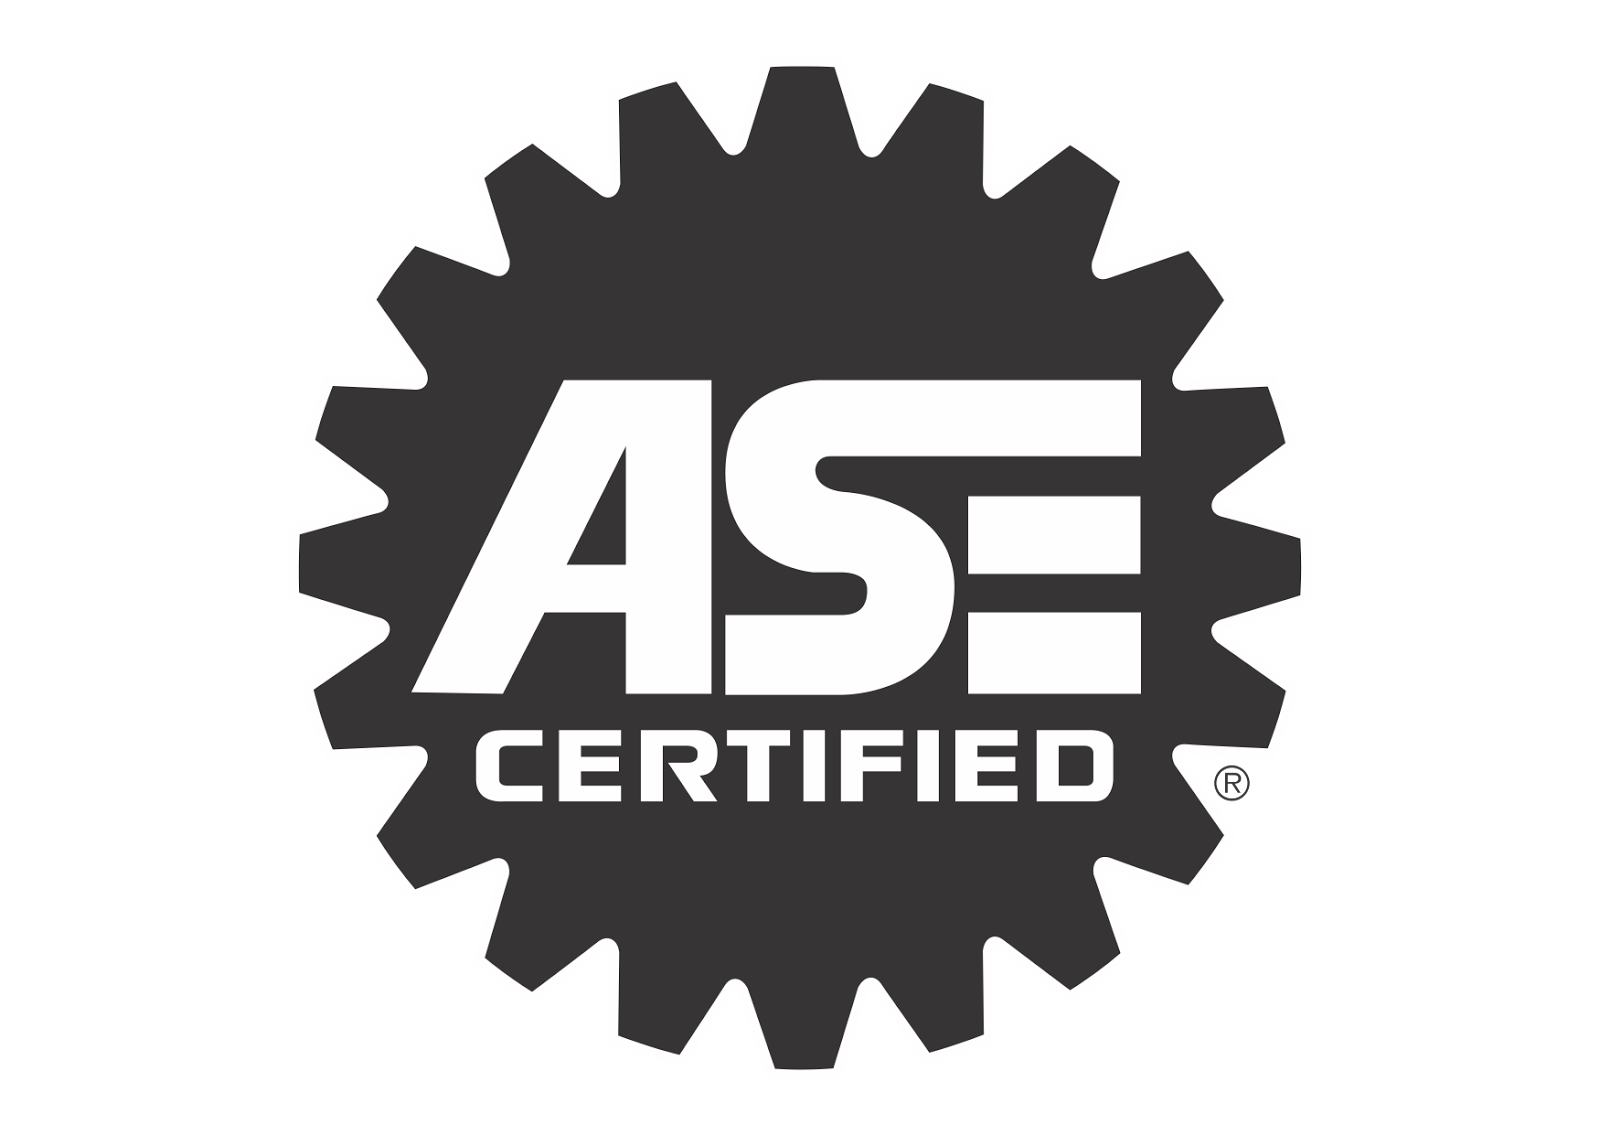 For Your Peace of Mind - Joseph Gold is an ASE Certified Master Technician. This means he has undergone vigorous training to provide you with the highest quality automotive service and diagnoses in the business.